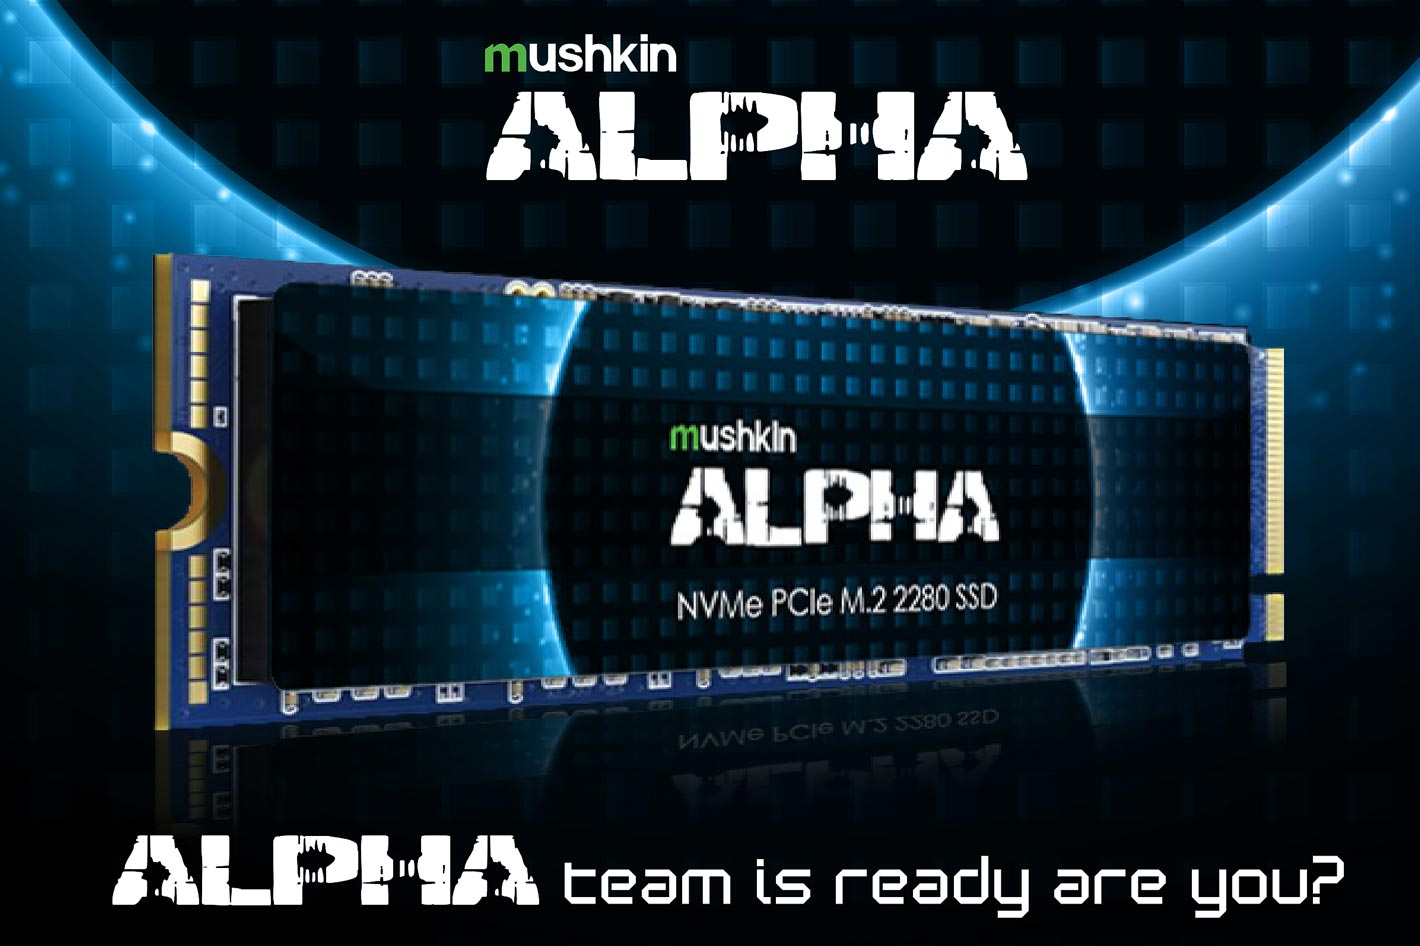 Mushkin ALPHA 8TB M.2 NVMe SSD: all the storage you need